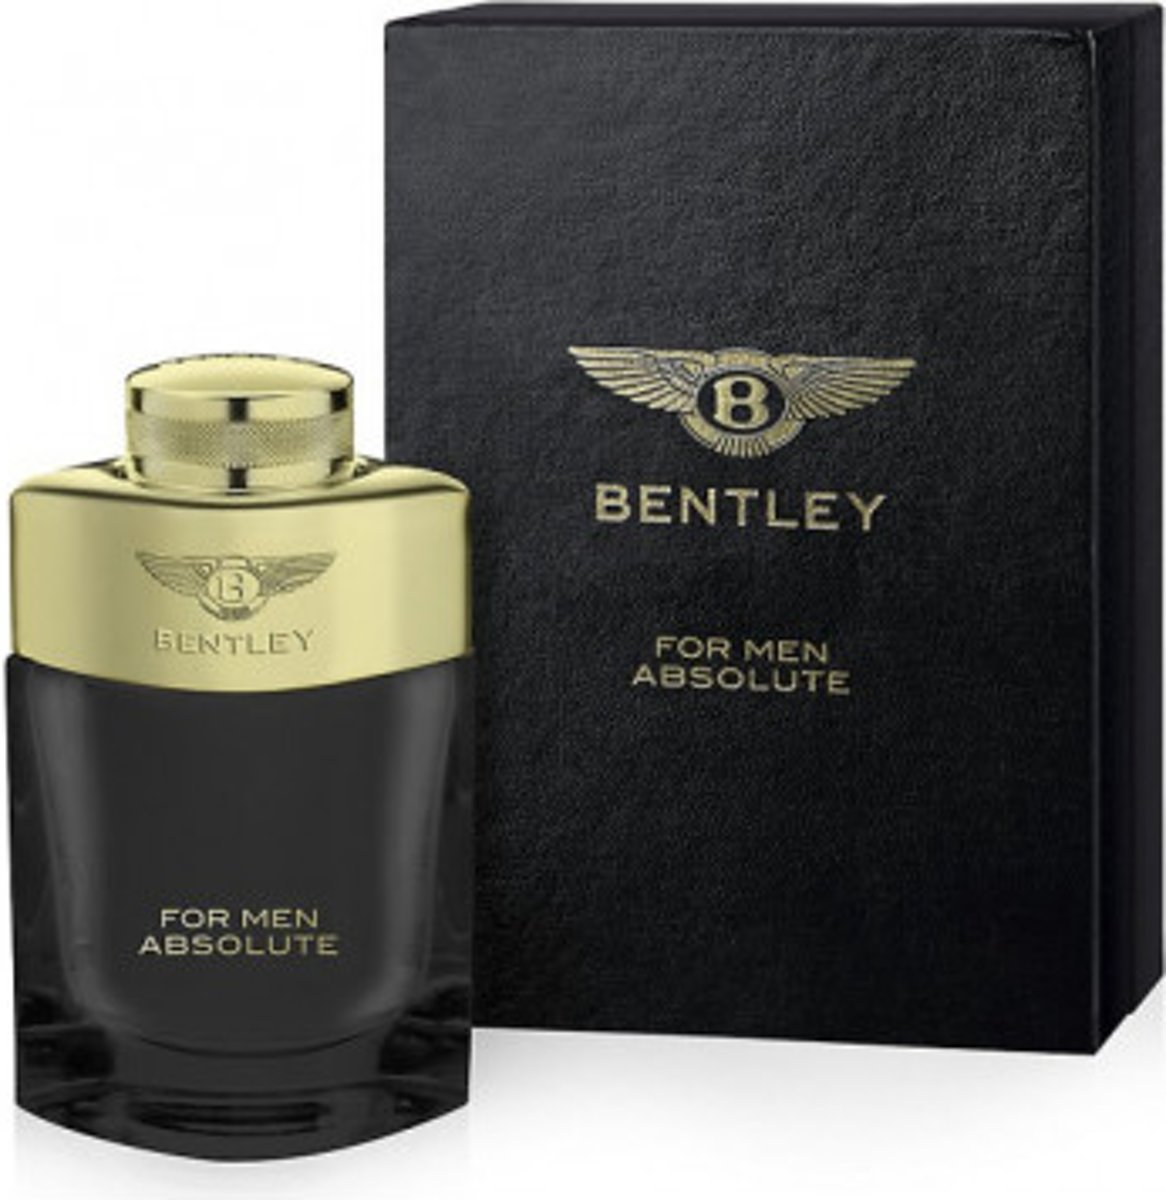 Bentley for man absolute edp 100 ml spray